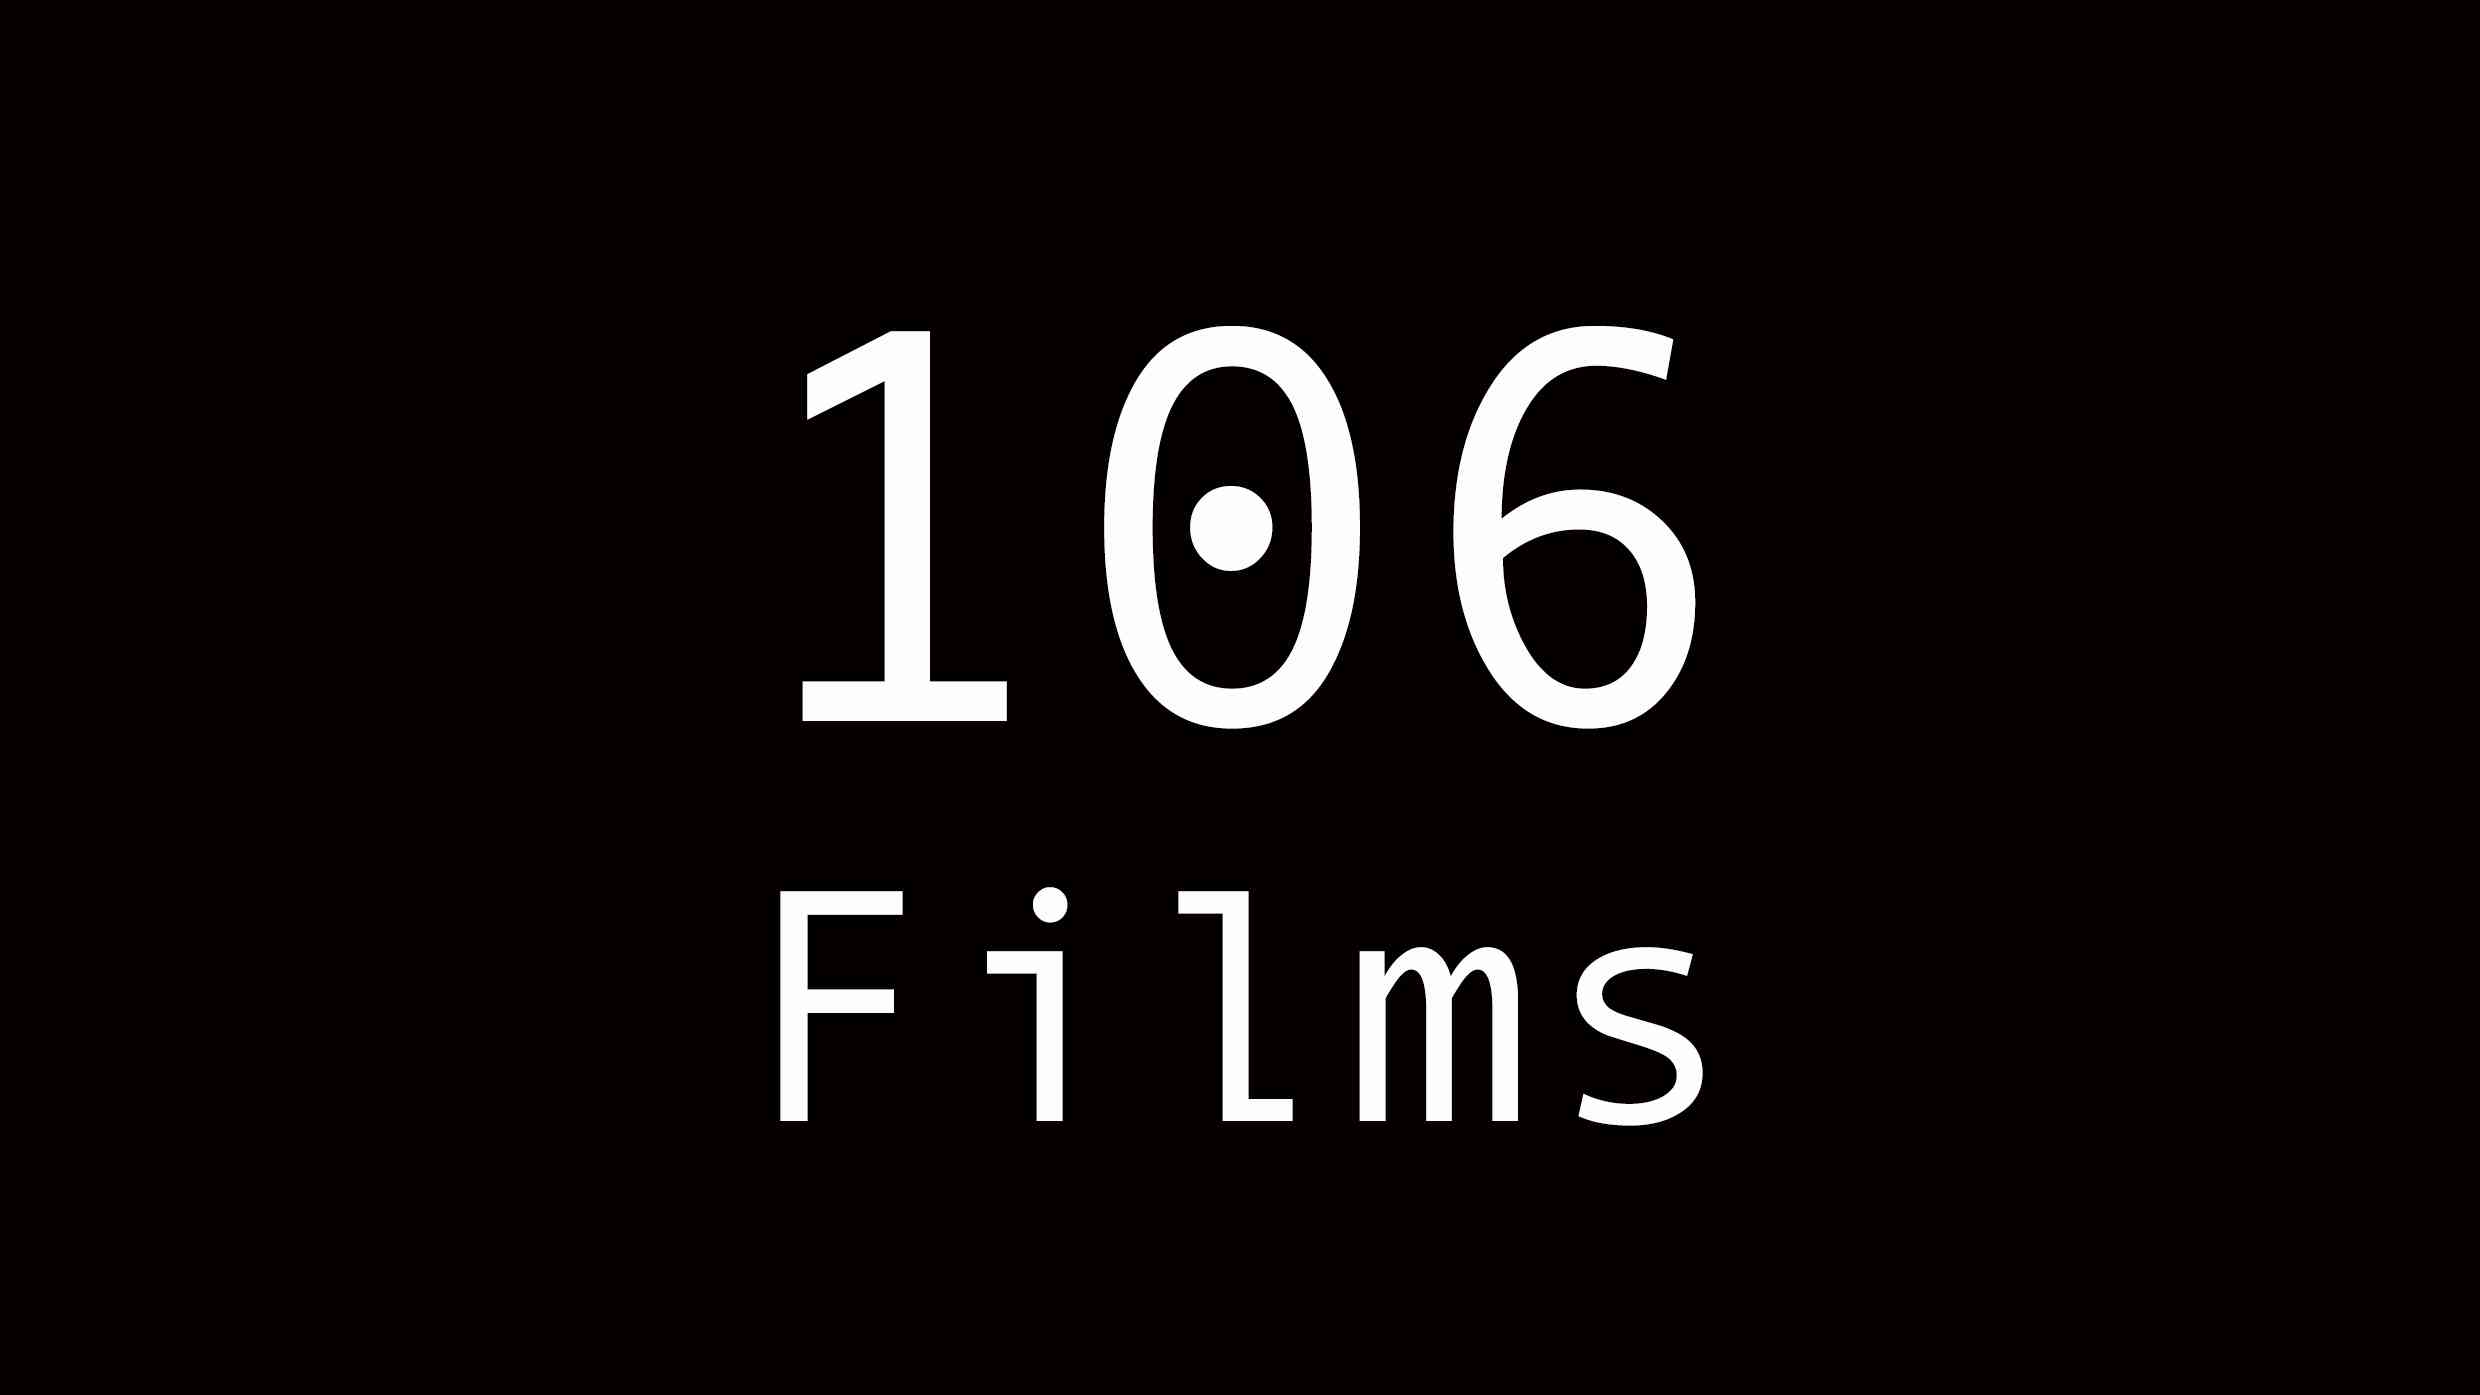 106 Films | Paris France | visite virtuelle 360 3D VR